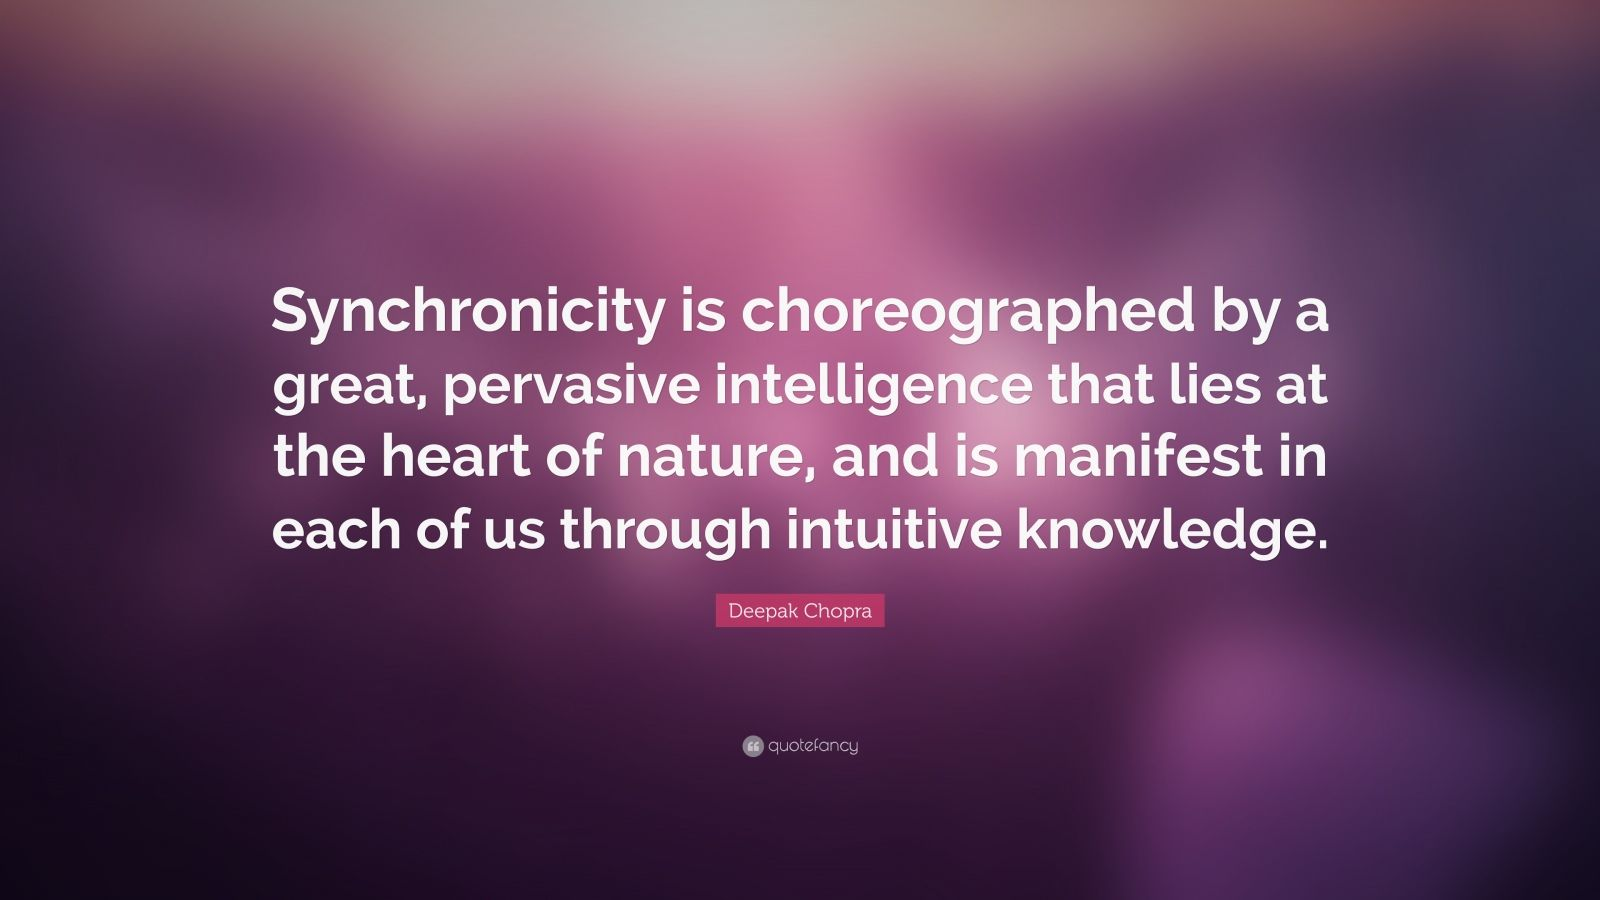 """Deepak Chopra Quote: """"Synchronicity is choreographed by a great, pervasive intelligence that lies at the heart of nature, and is manifest in each of us through intuitive knowledge."""""""